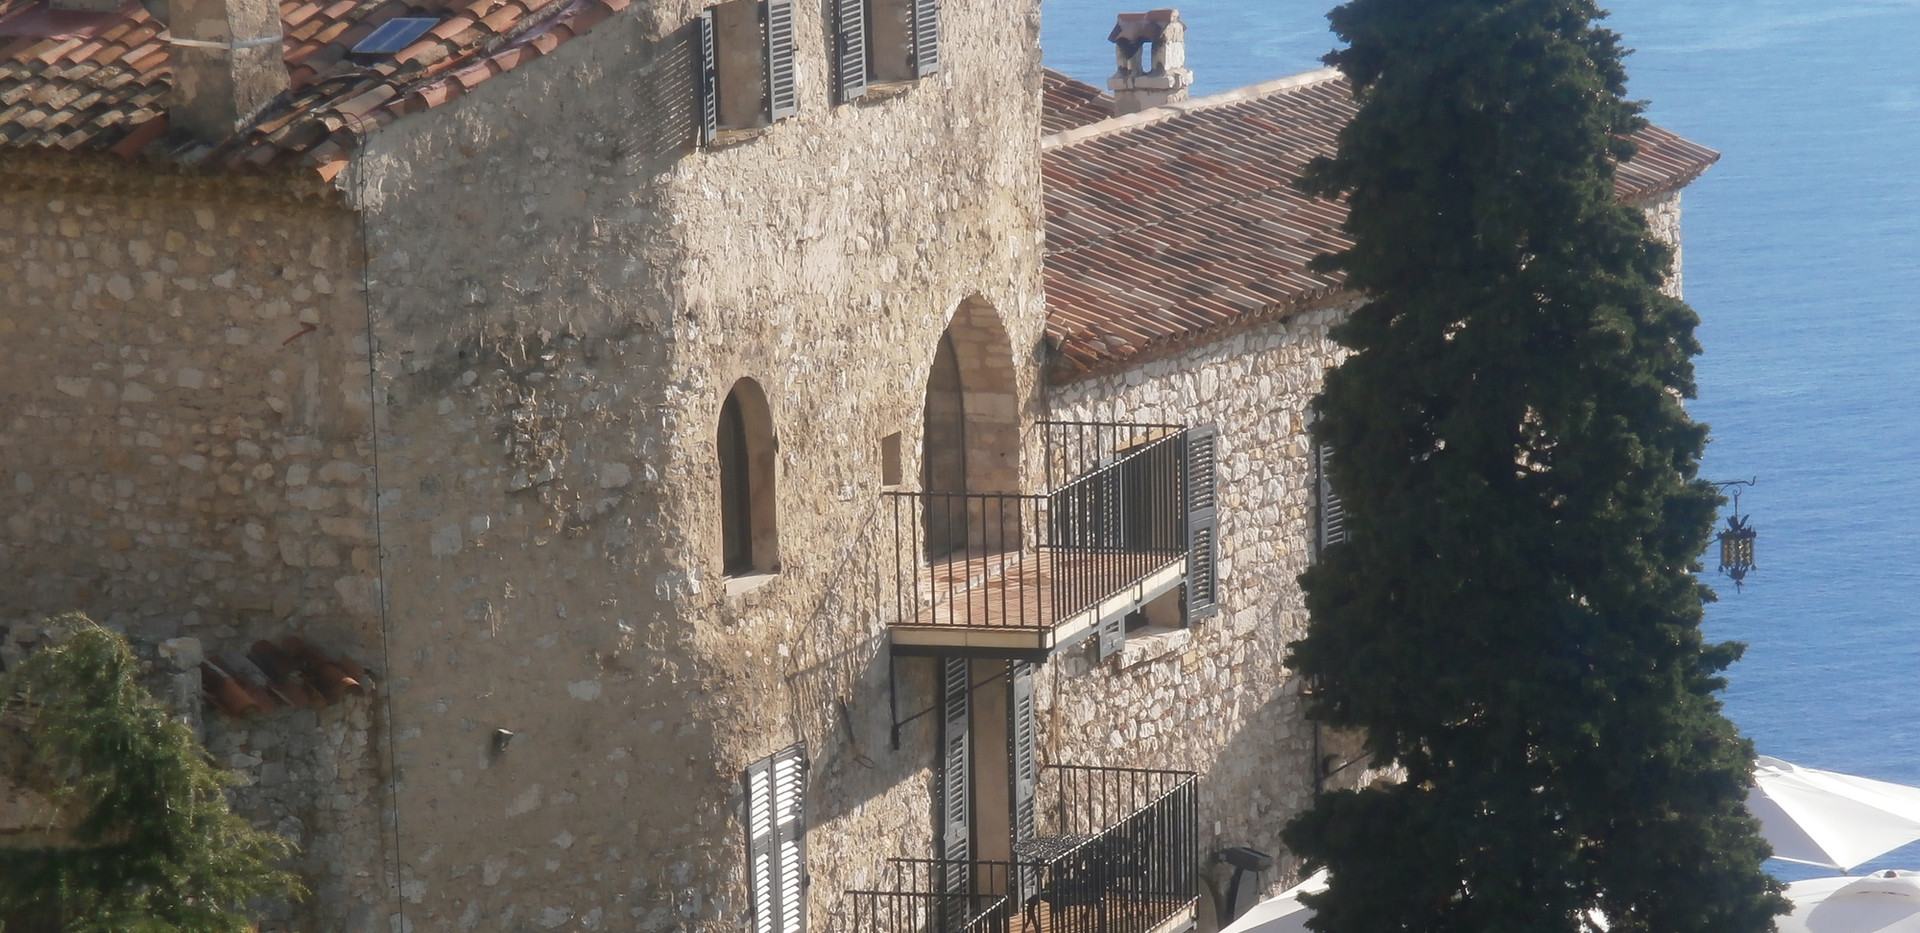 Beautiful nearby village of Eze